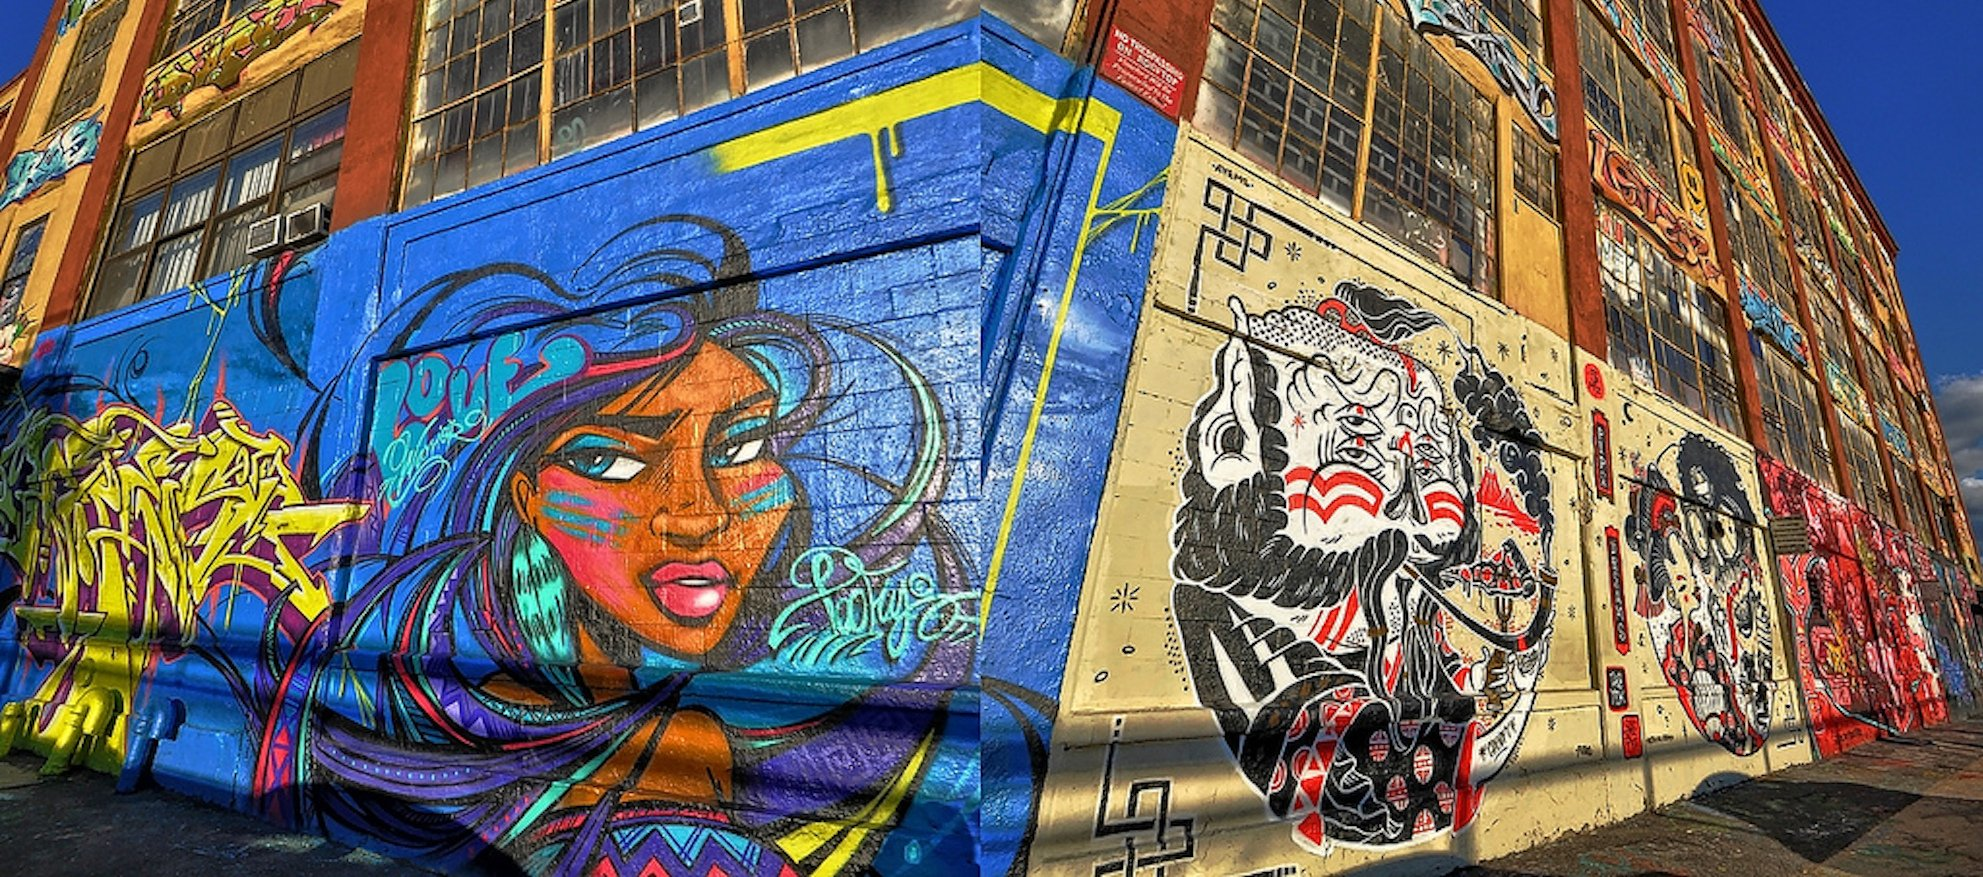 Developer who whitewashed 5 Pointz graffiti invites artists back